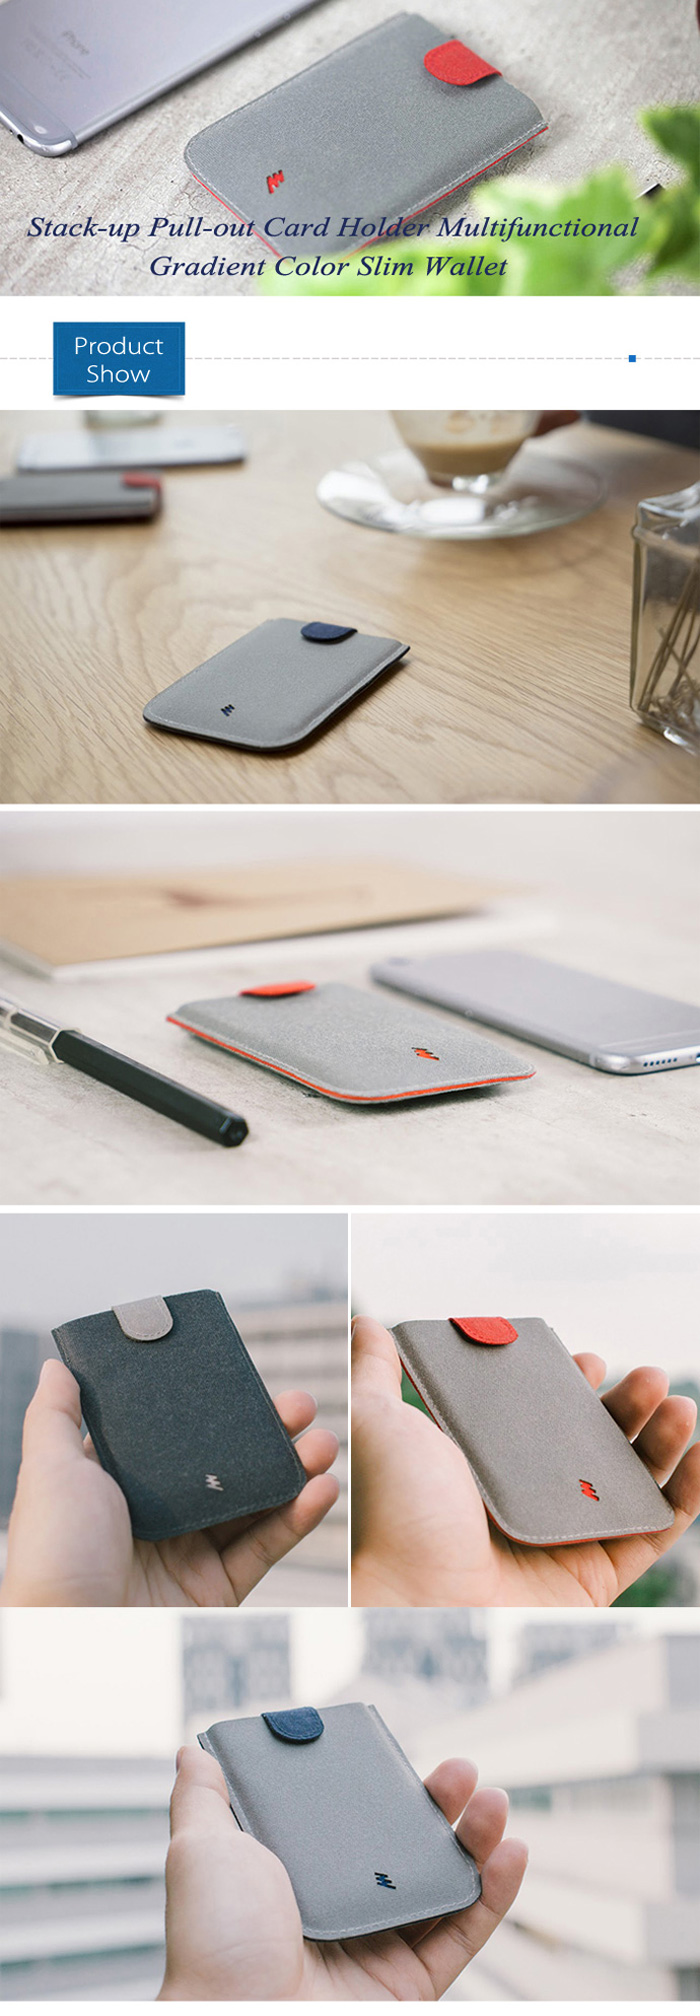 Stack-up Pull-out Card Holder Multifunctional Gradient Color Slim Wallet